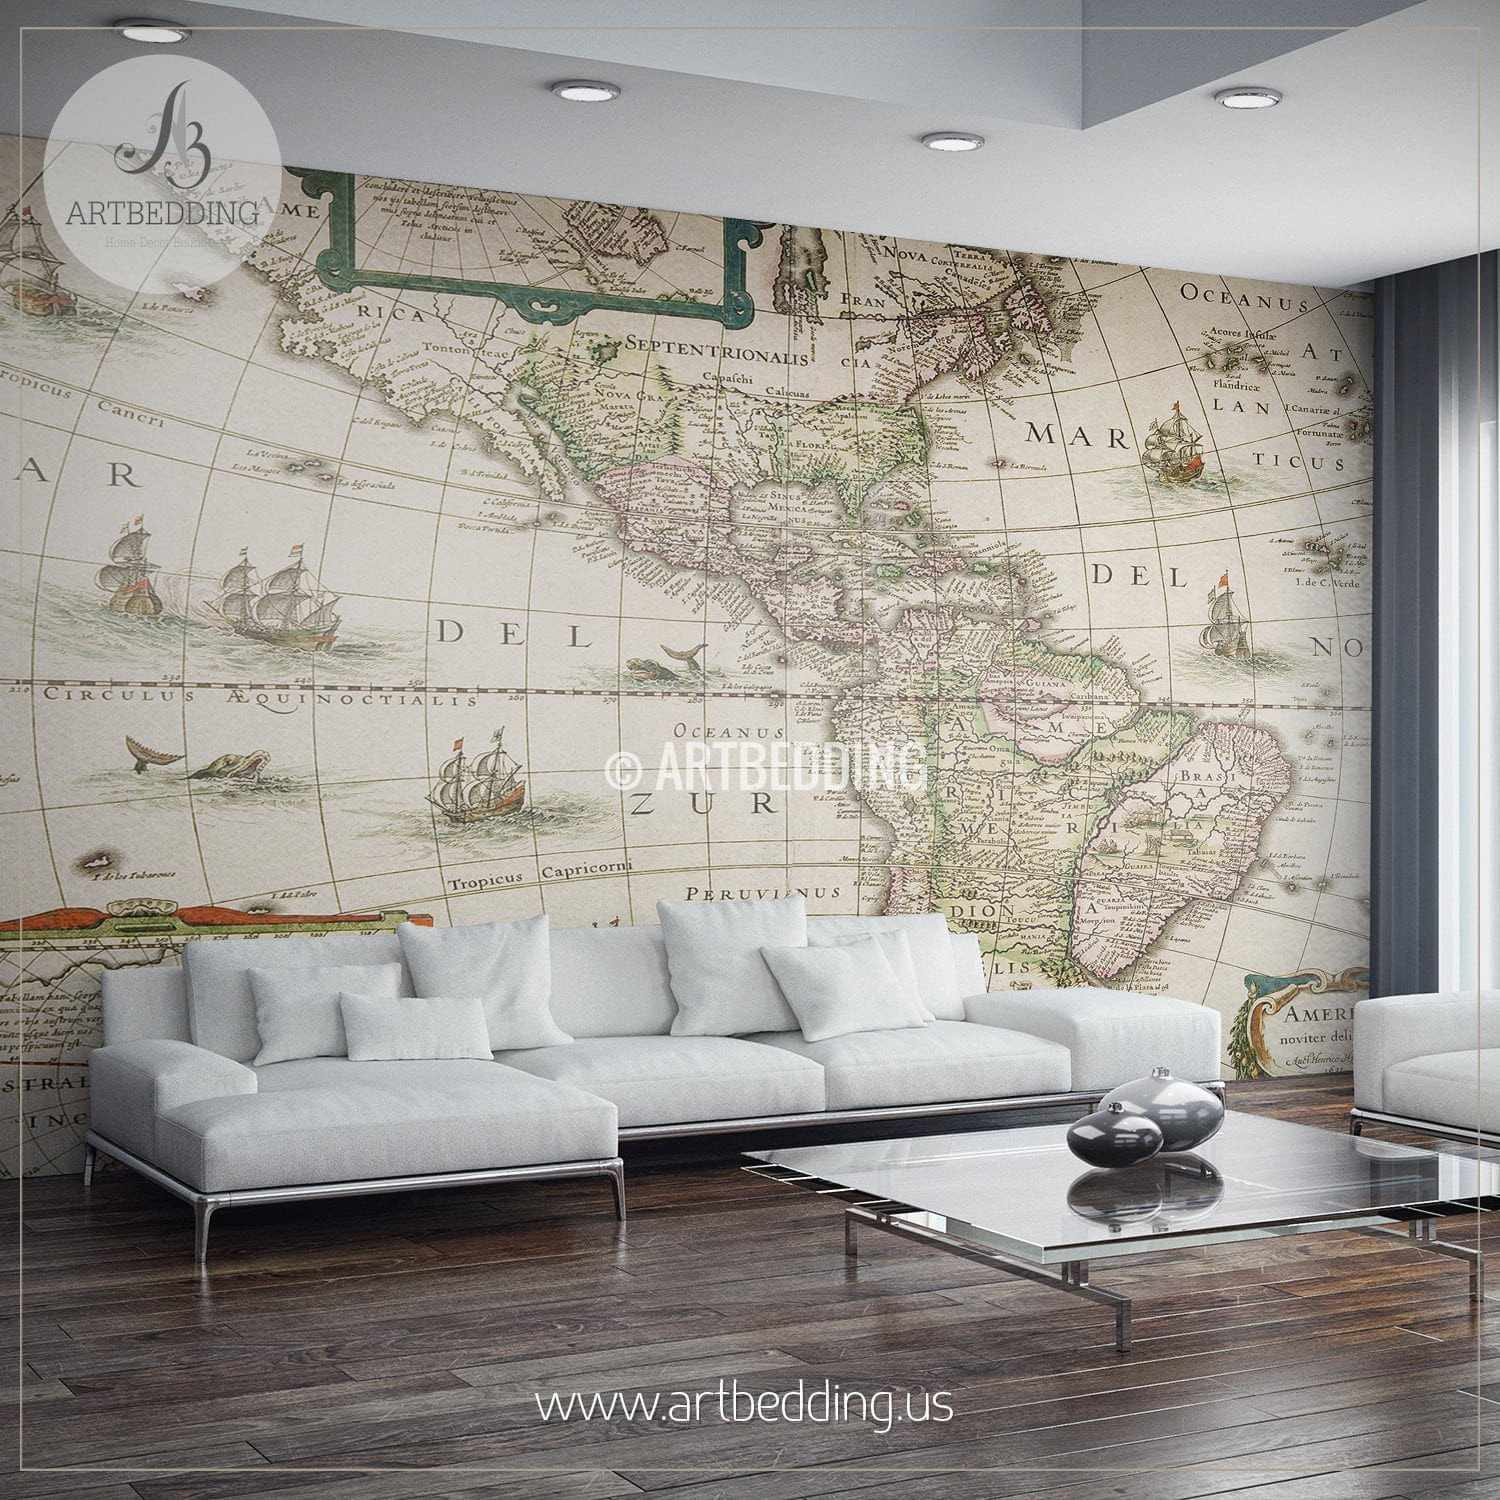 America Map Dated 1631 Wall Mural, Self Adhesive Peel U0026 Stick Photo Mural,  Atlas ...